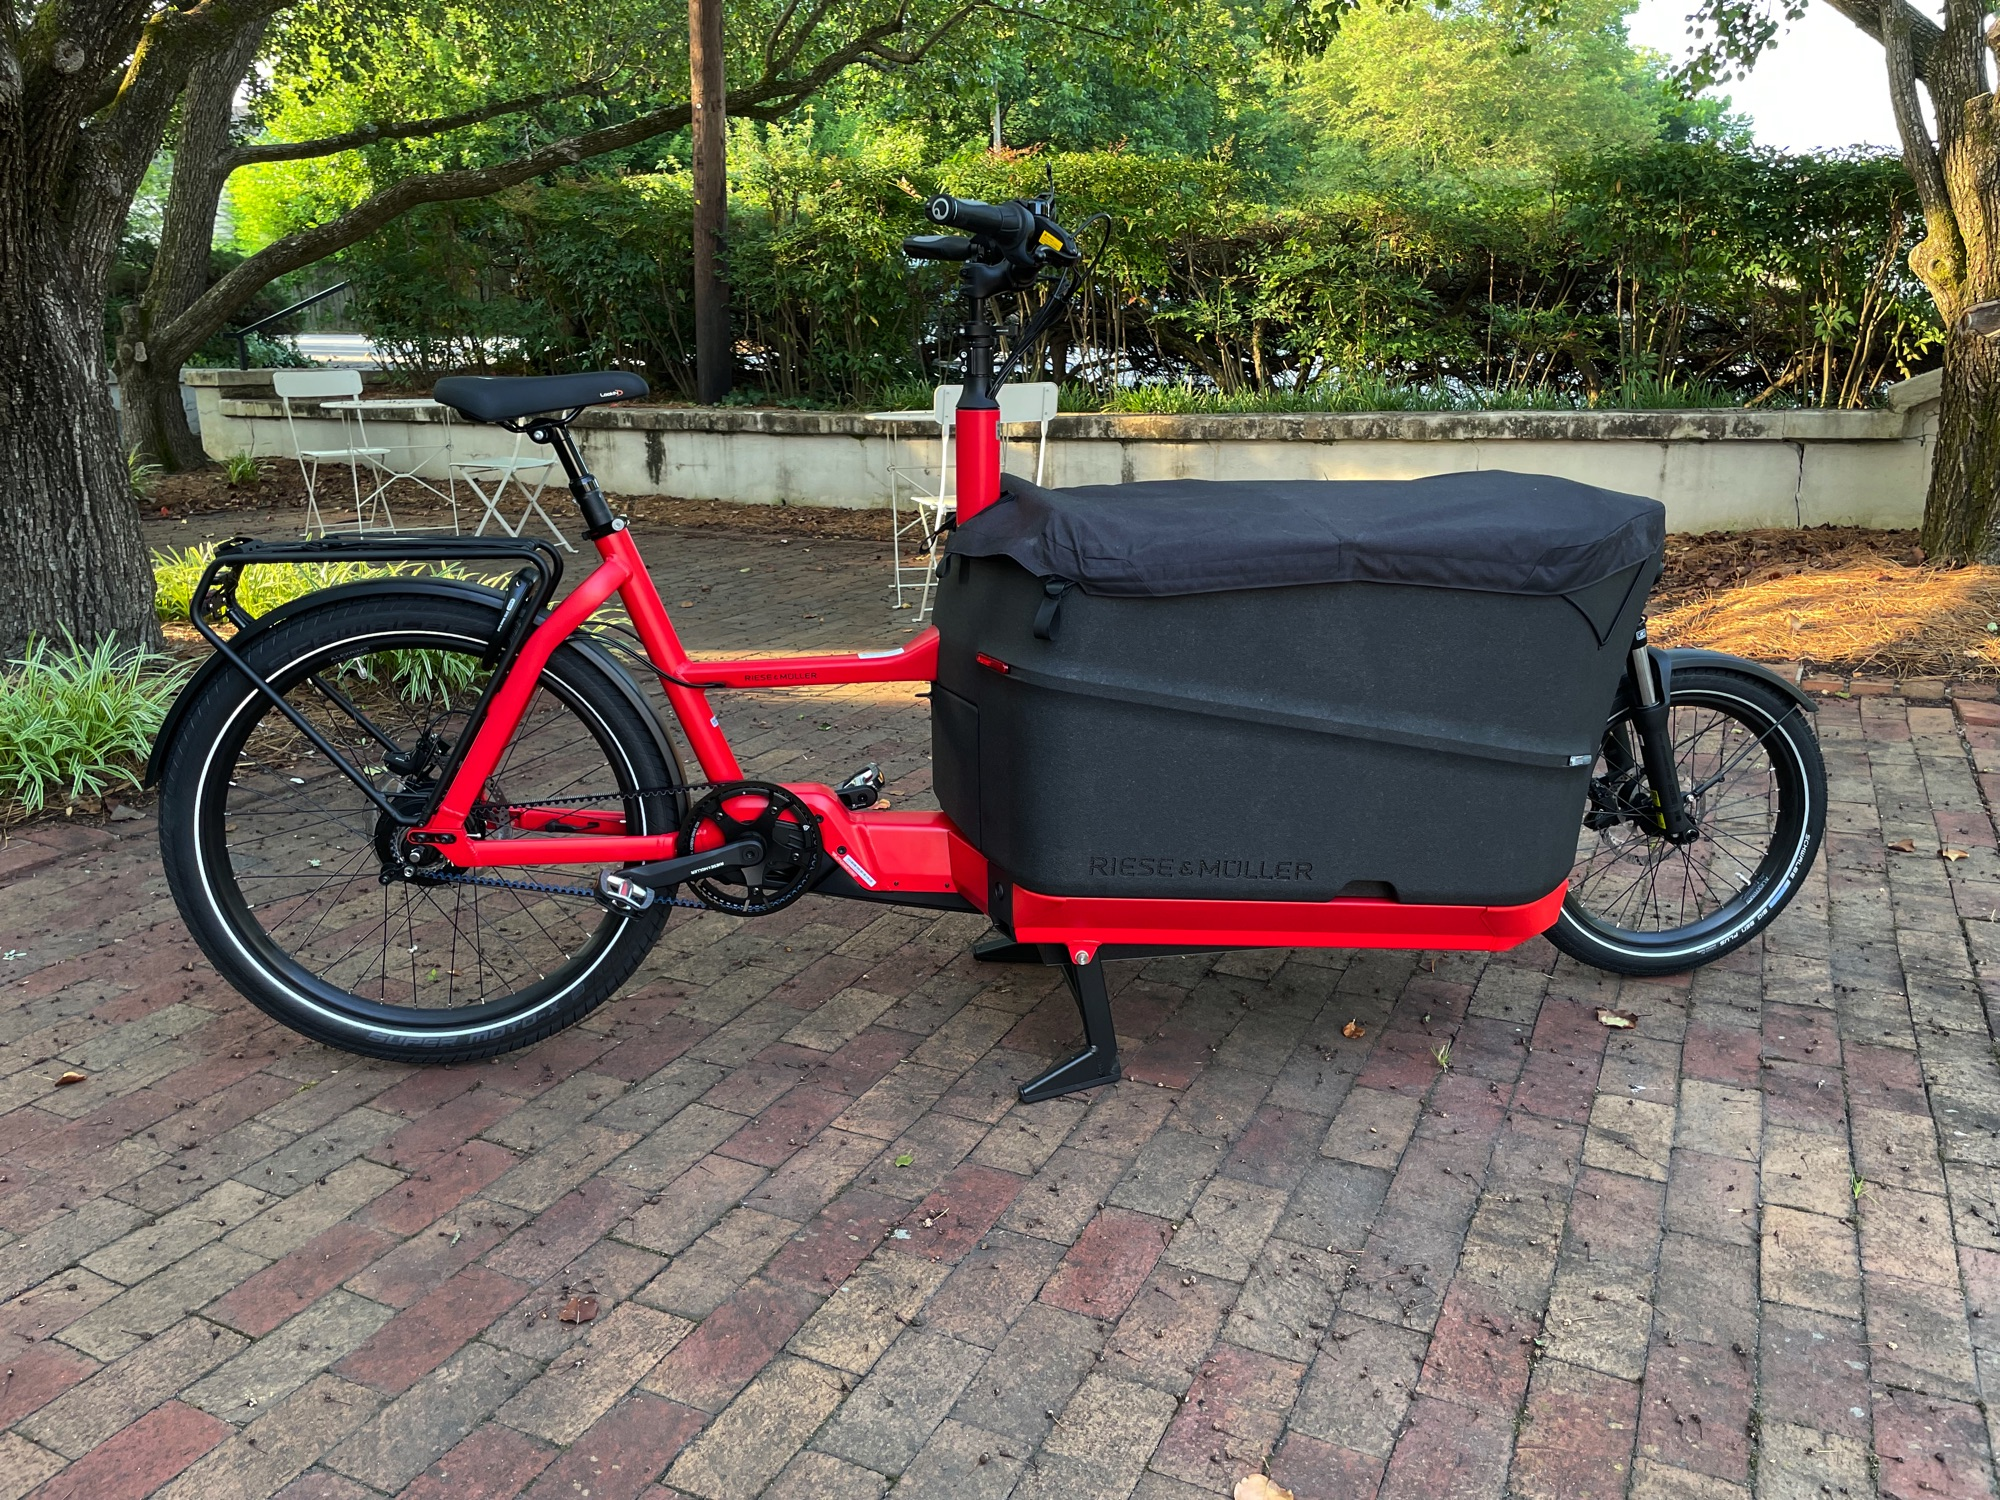 """Featured image for """"Riese & Muller Packster 70, re-inventing the eCargo Bicycle!"""""""